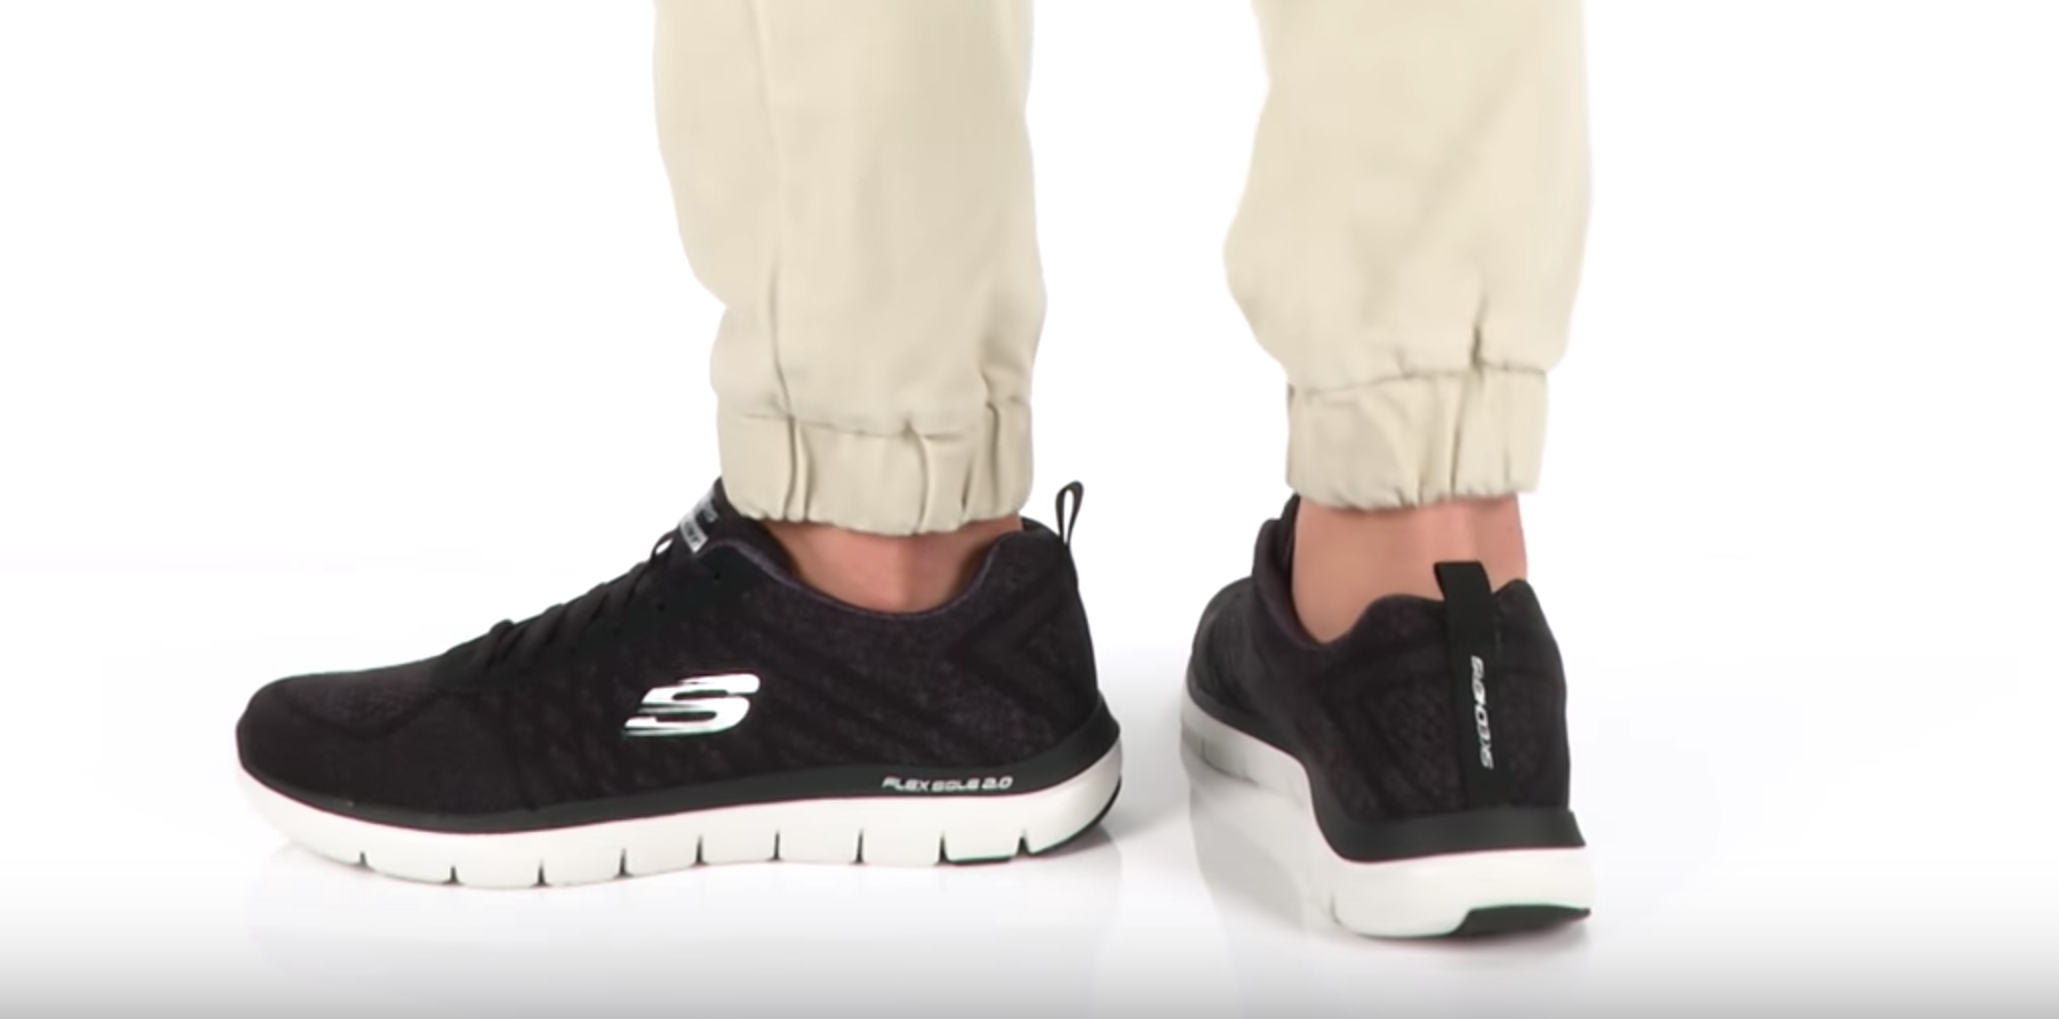 skechers shape up shoes for plantar fasciitis